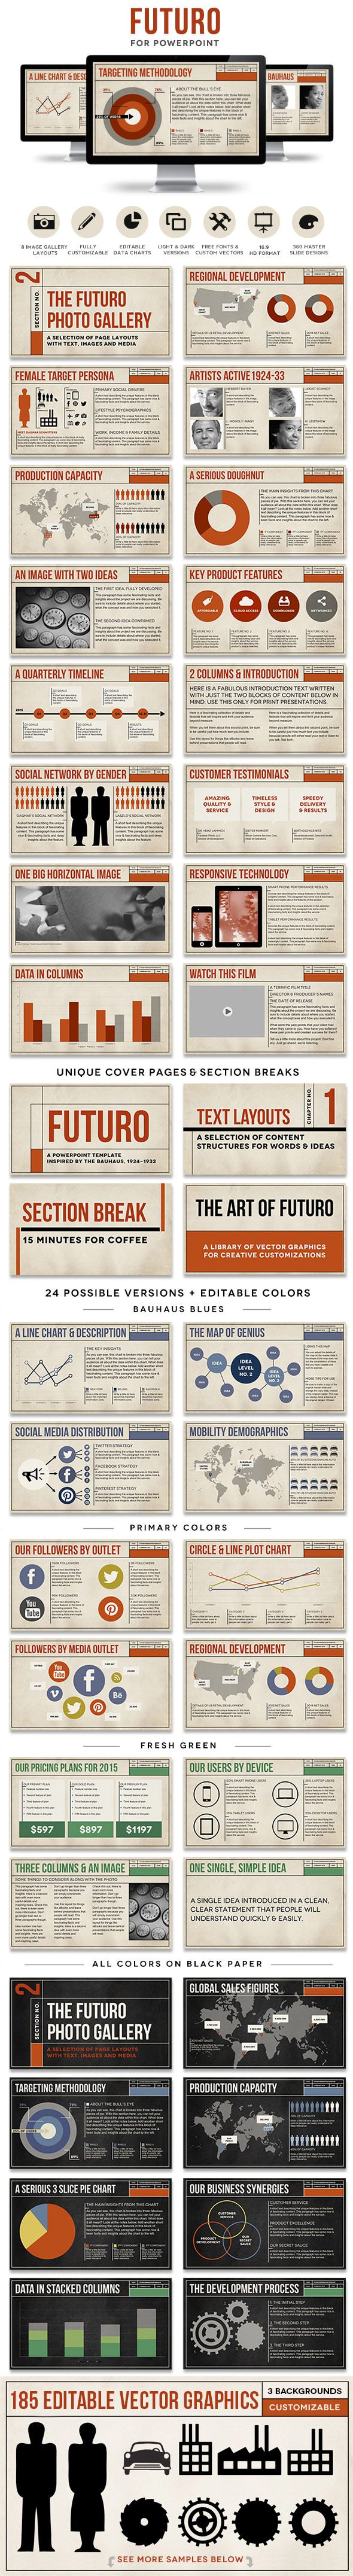 Futuro Powerpoint Presentation Template - great for eBooks, slide decks and creative presentations!